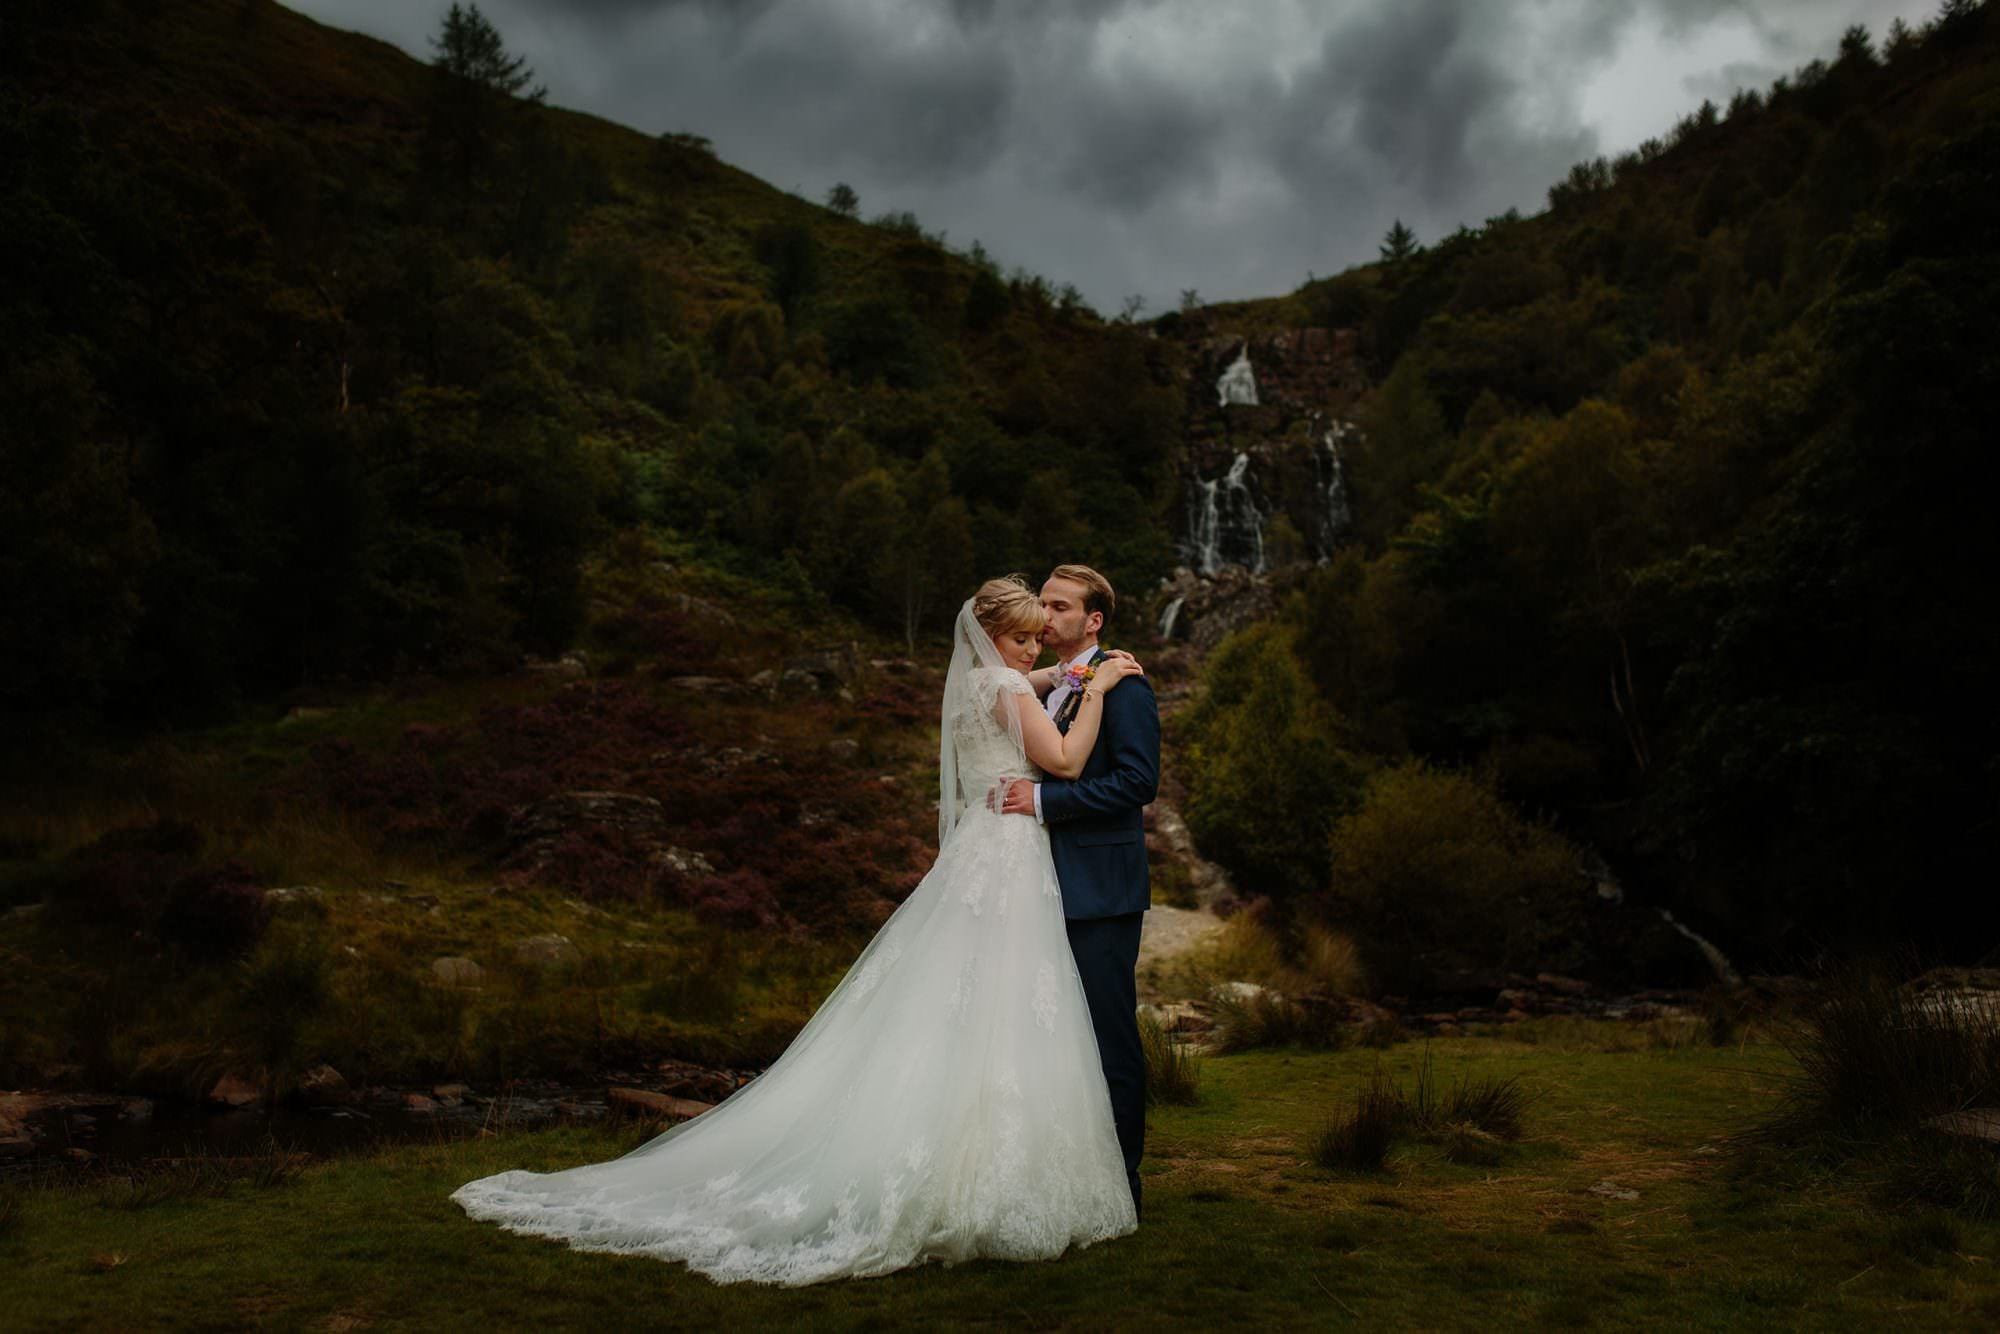 Lake Vyrnwy Wedding Day at the waterfall